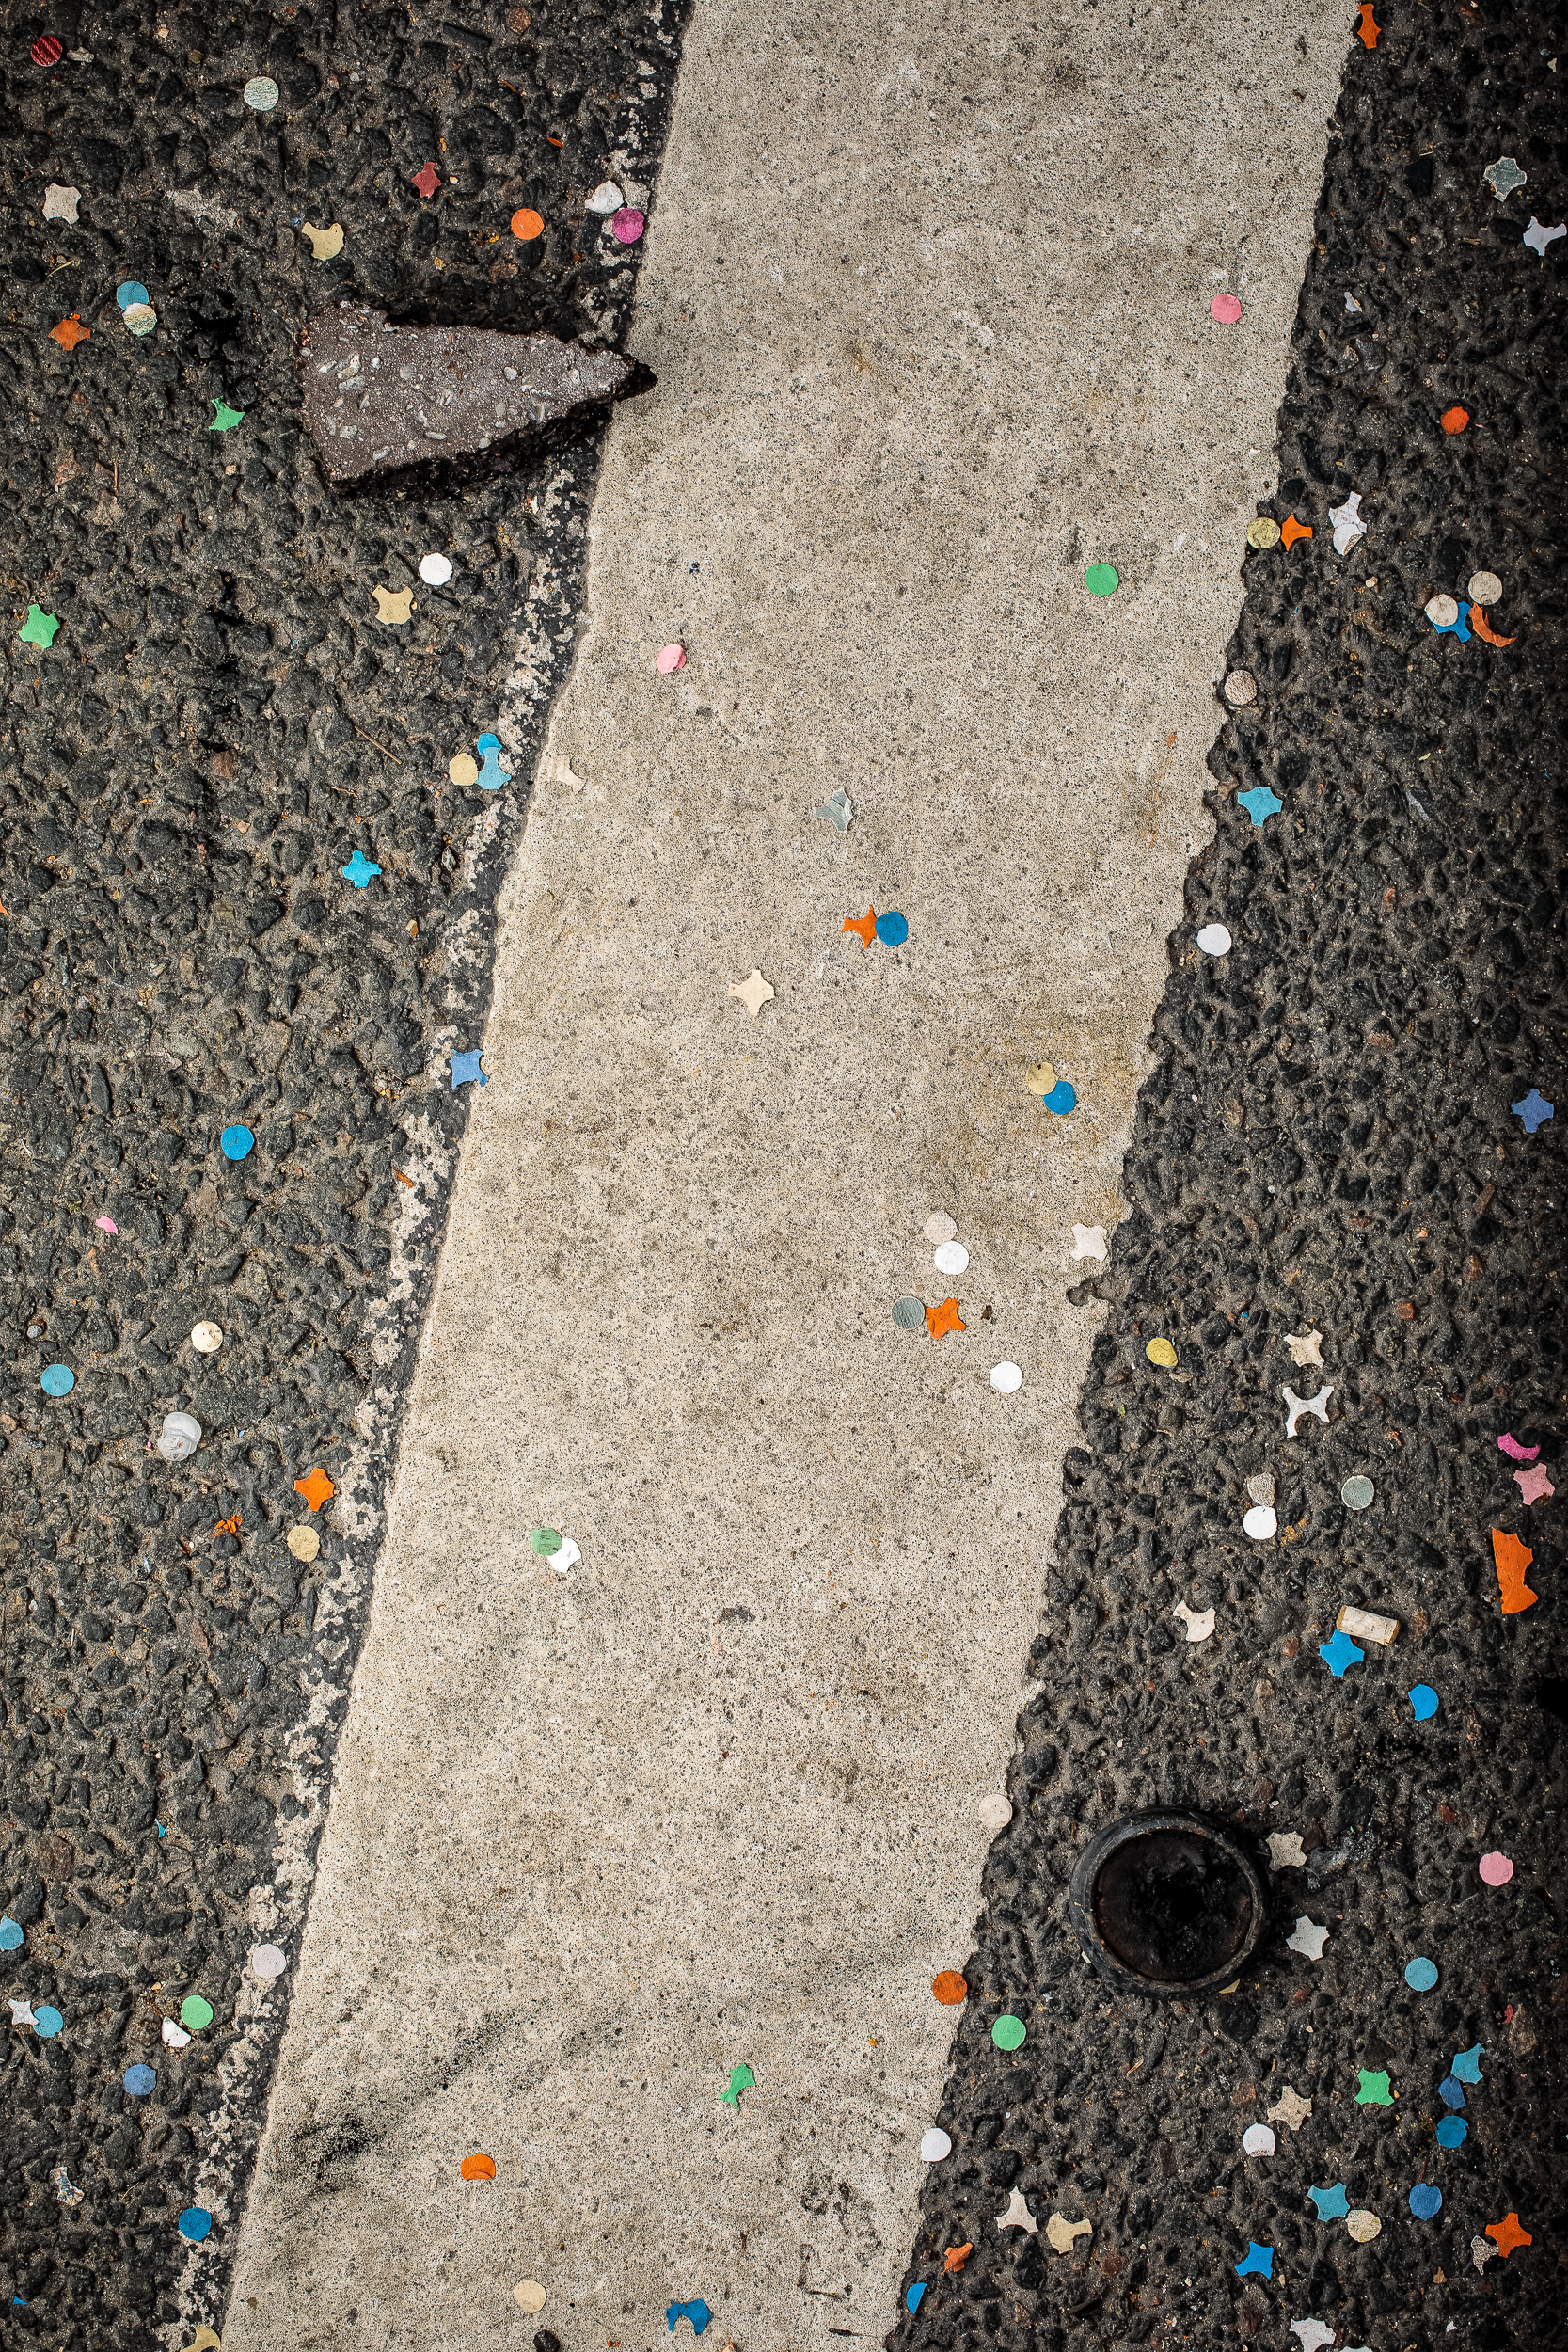 Tear gas canister, cement block and confetti, 2018